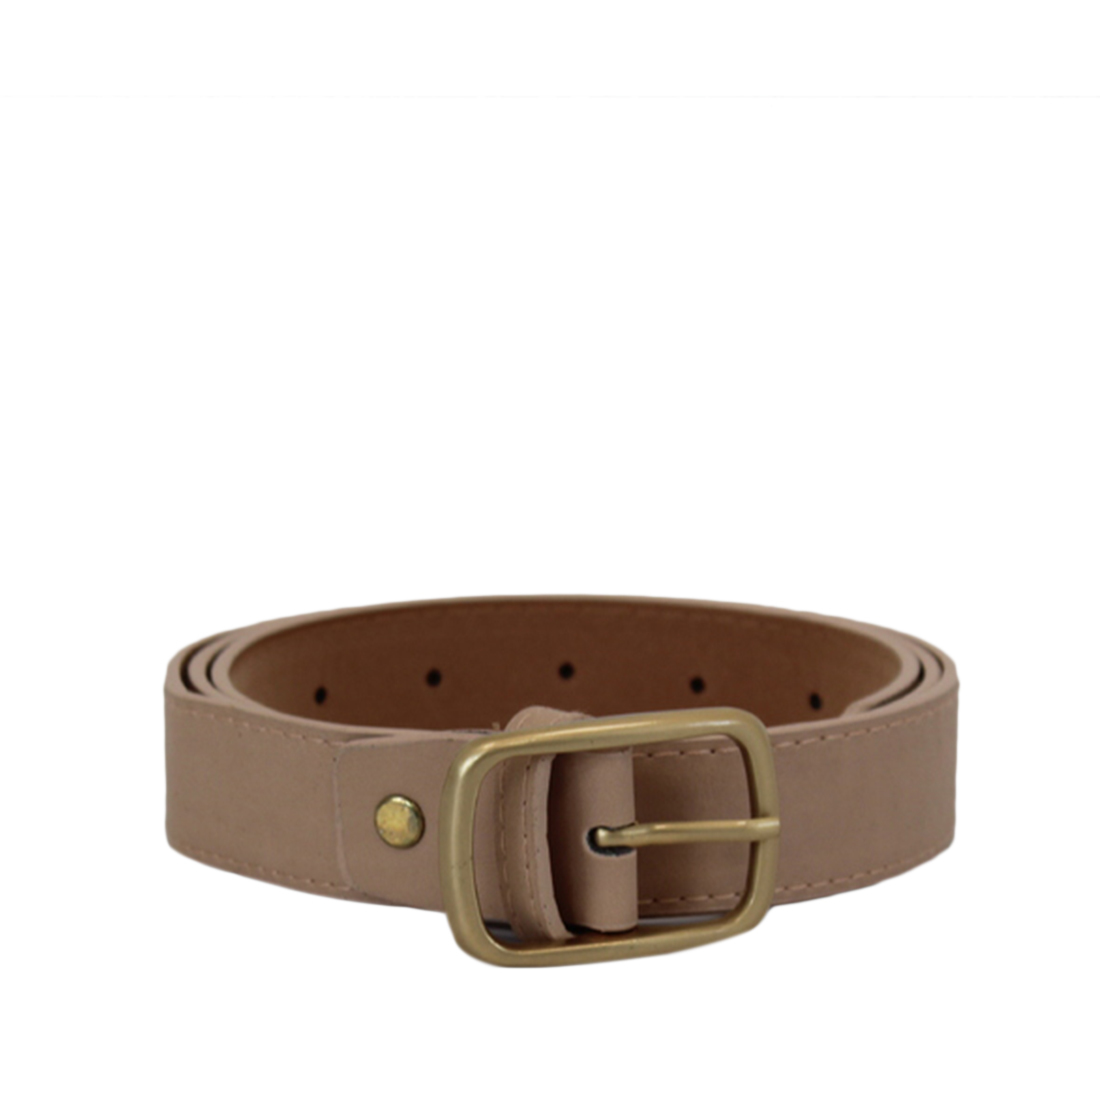 Plain with gold buckle